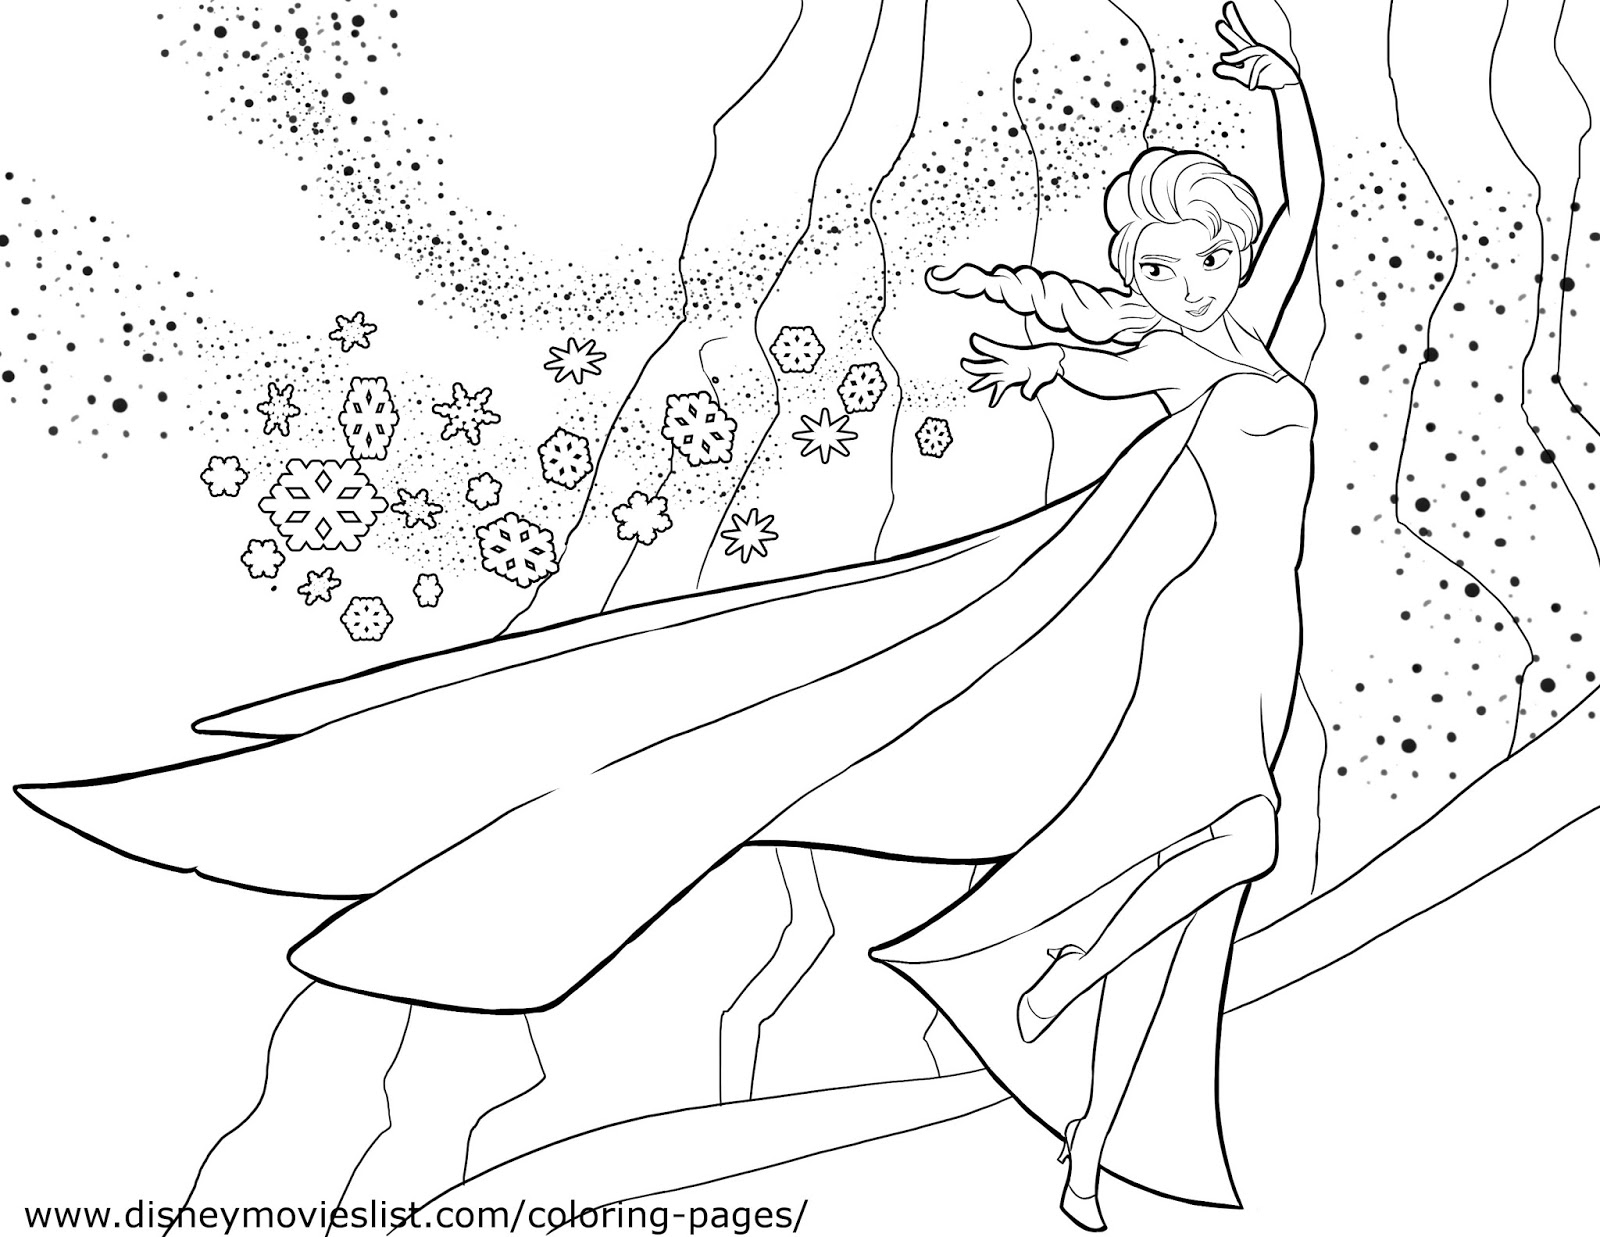 Free printable coloring pages disney frozen 2016